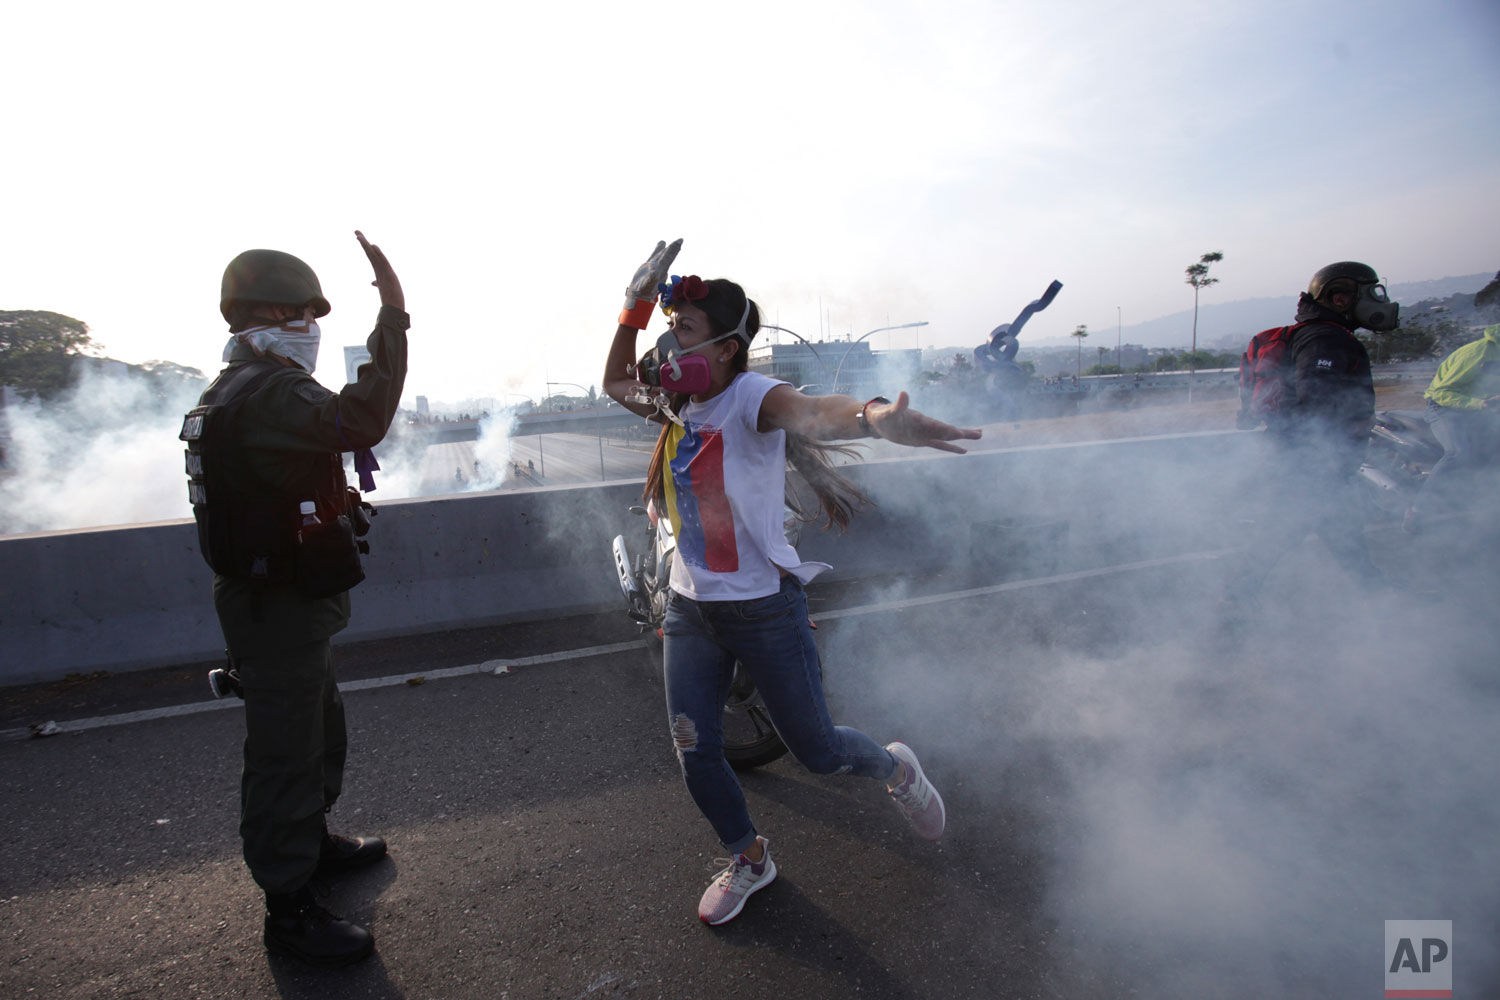 An opponent to Venezuela's President Nicolas Maduro high fives a rebel soldier on a highway overpass outside La Carlota air base amid tear gas fired by loyalist soldiers from inside the base, early in what became a failed military uprising in Caracas, Venezuela, Tuesday, April 30, 2019. (AP Photo/Boris Vergara)